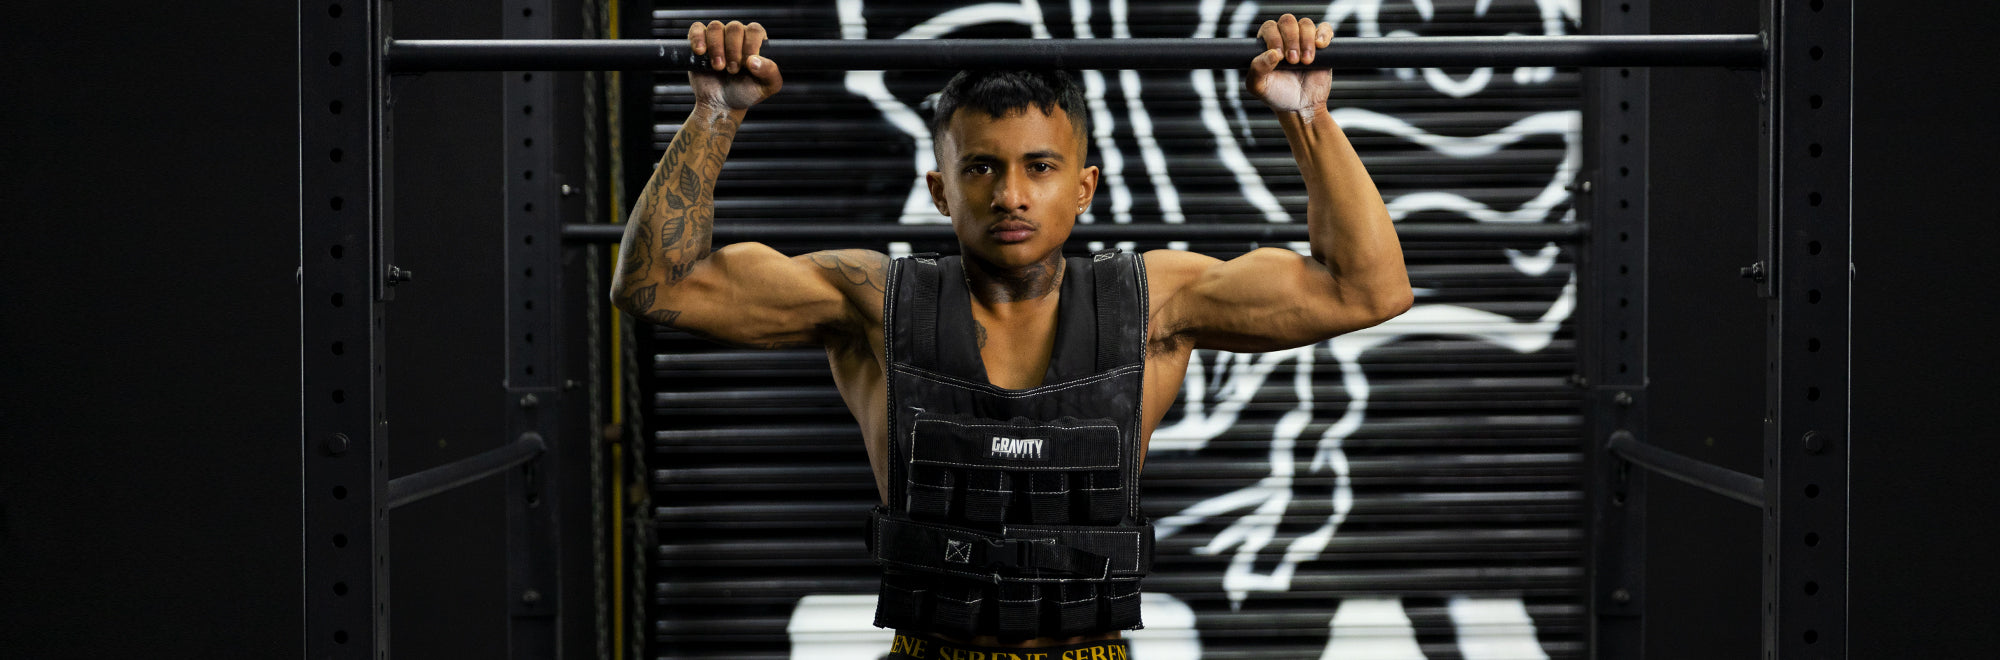 10 Ways To Build Muscle With A Weighted Vest